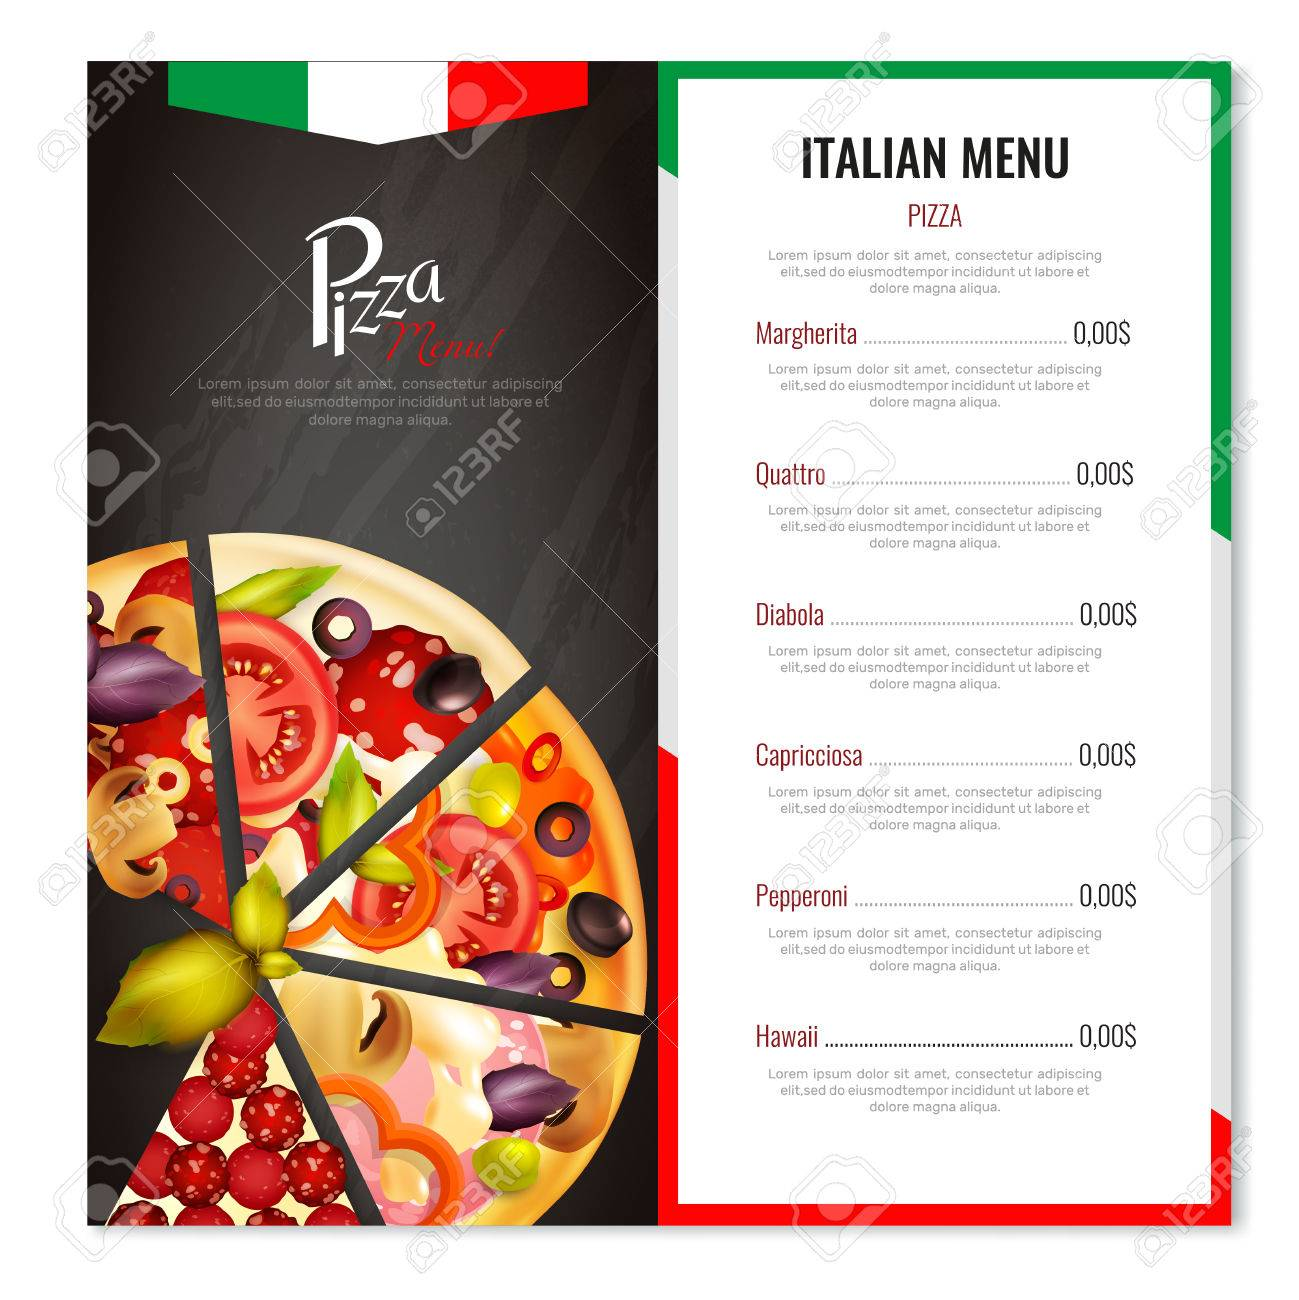 pizza menu design with realistic images of pizza slices with